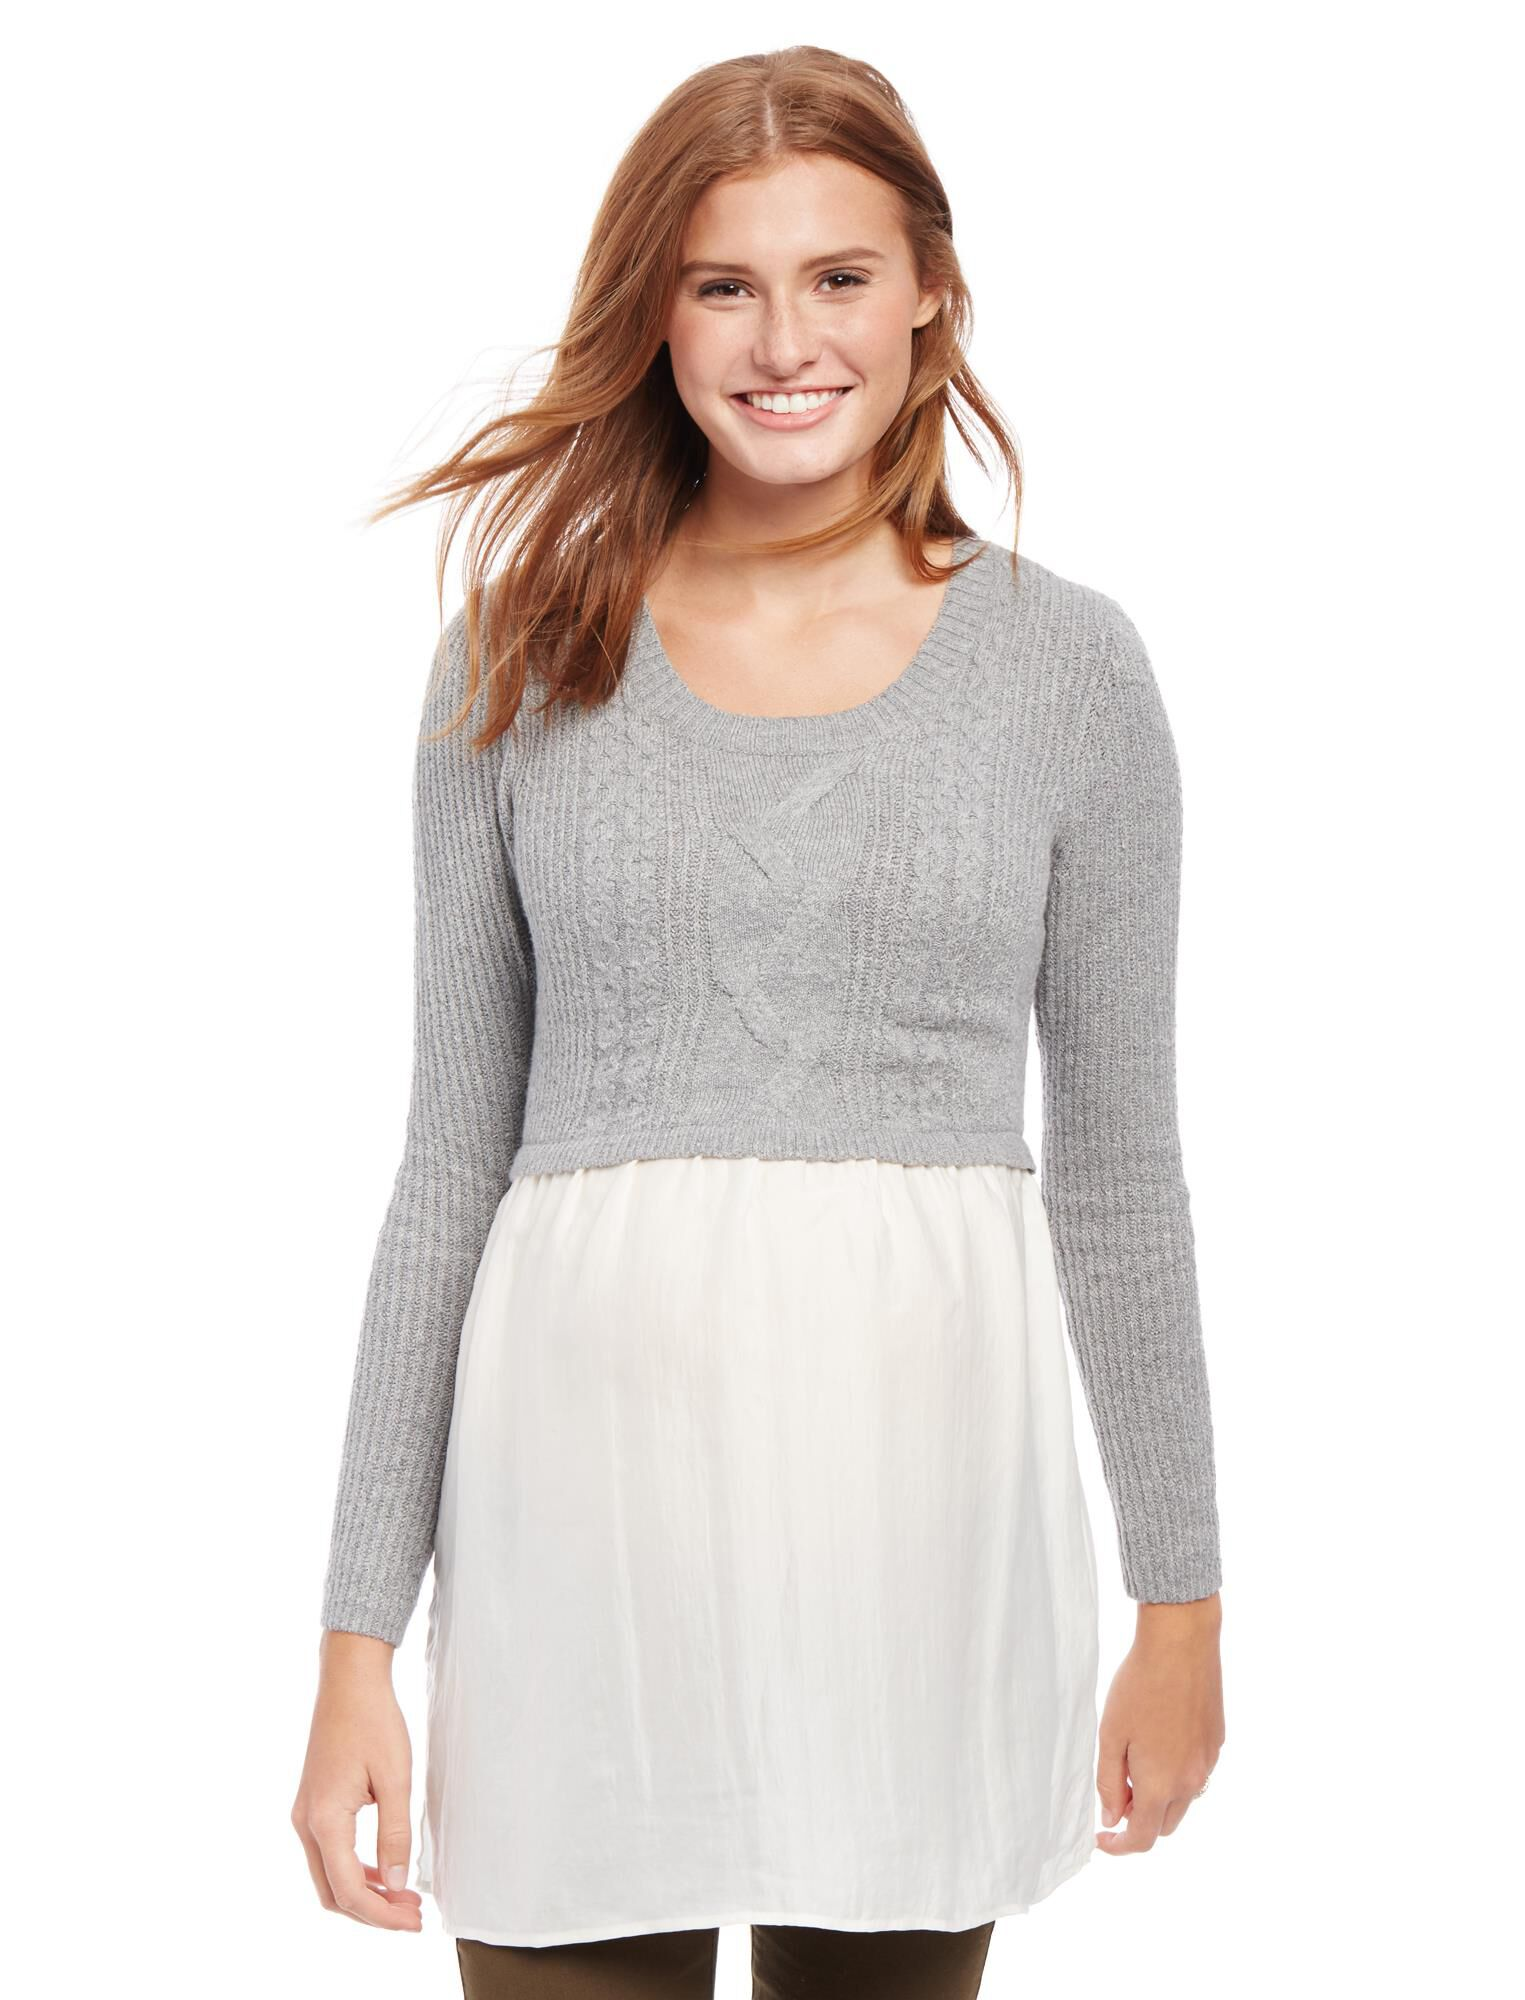 Cable Knit Maternity Sweater Shirt